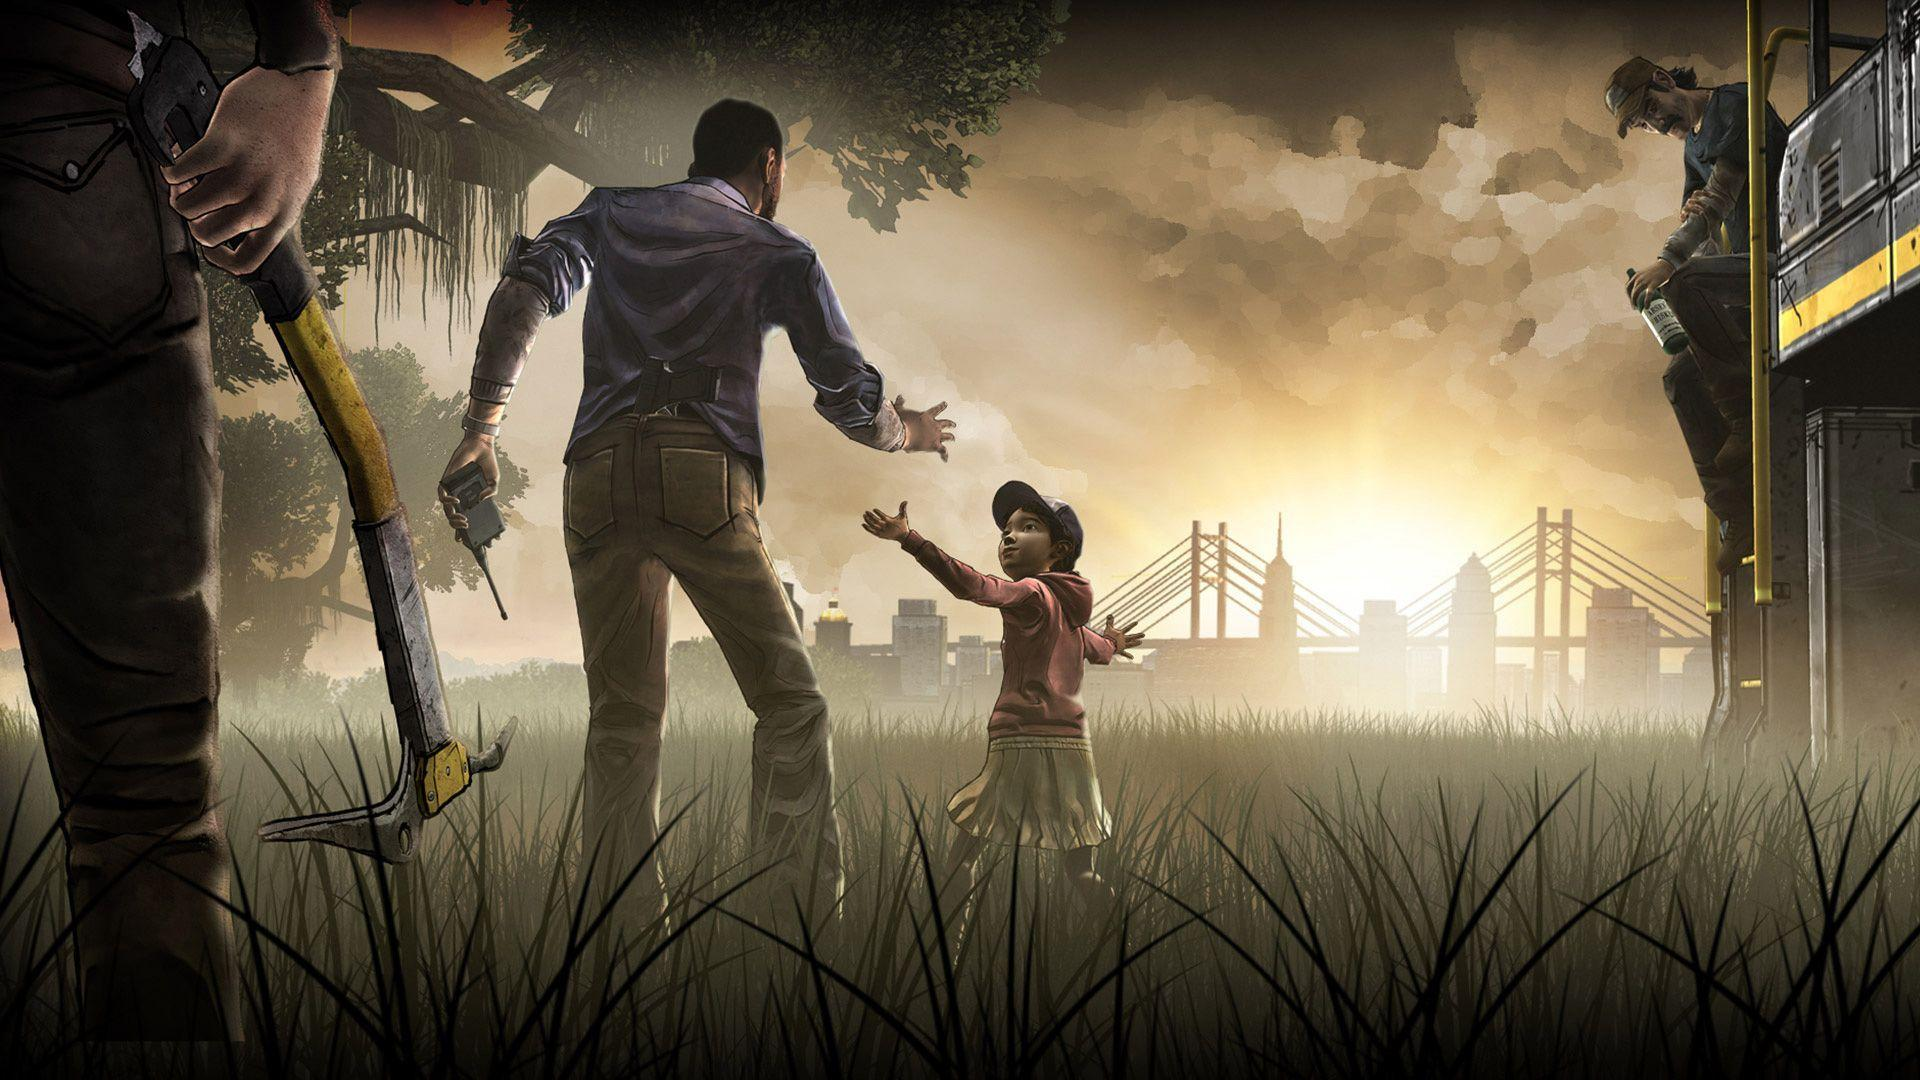 Image For > The Walking Dead Season 1 Game Wallpapers